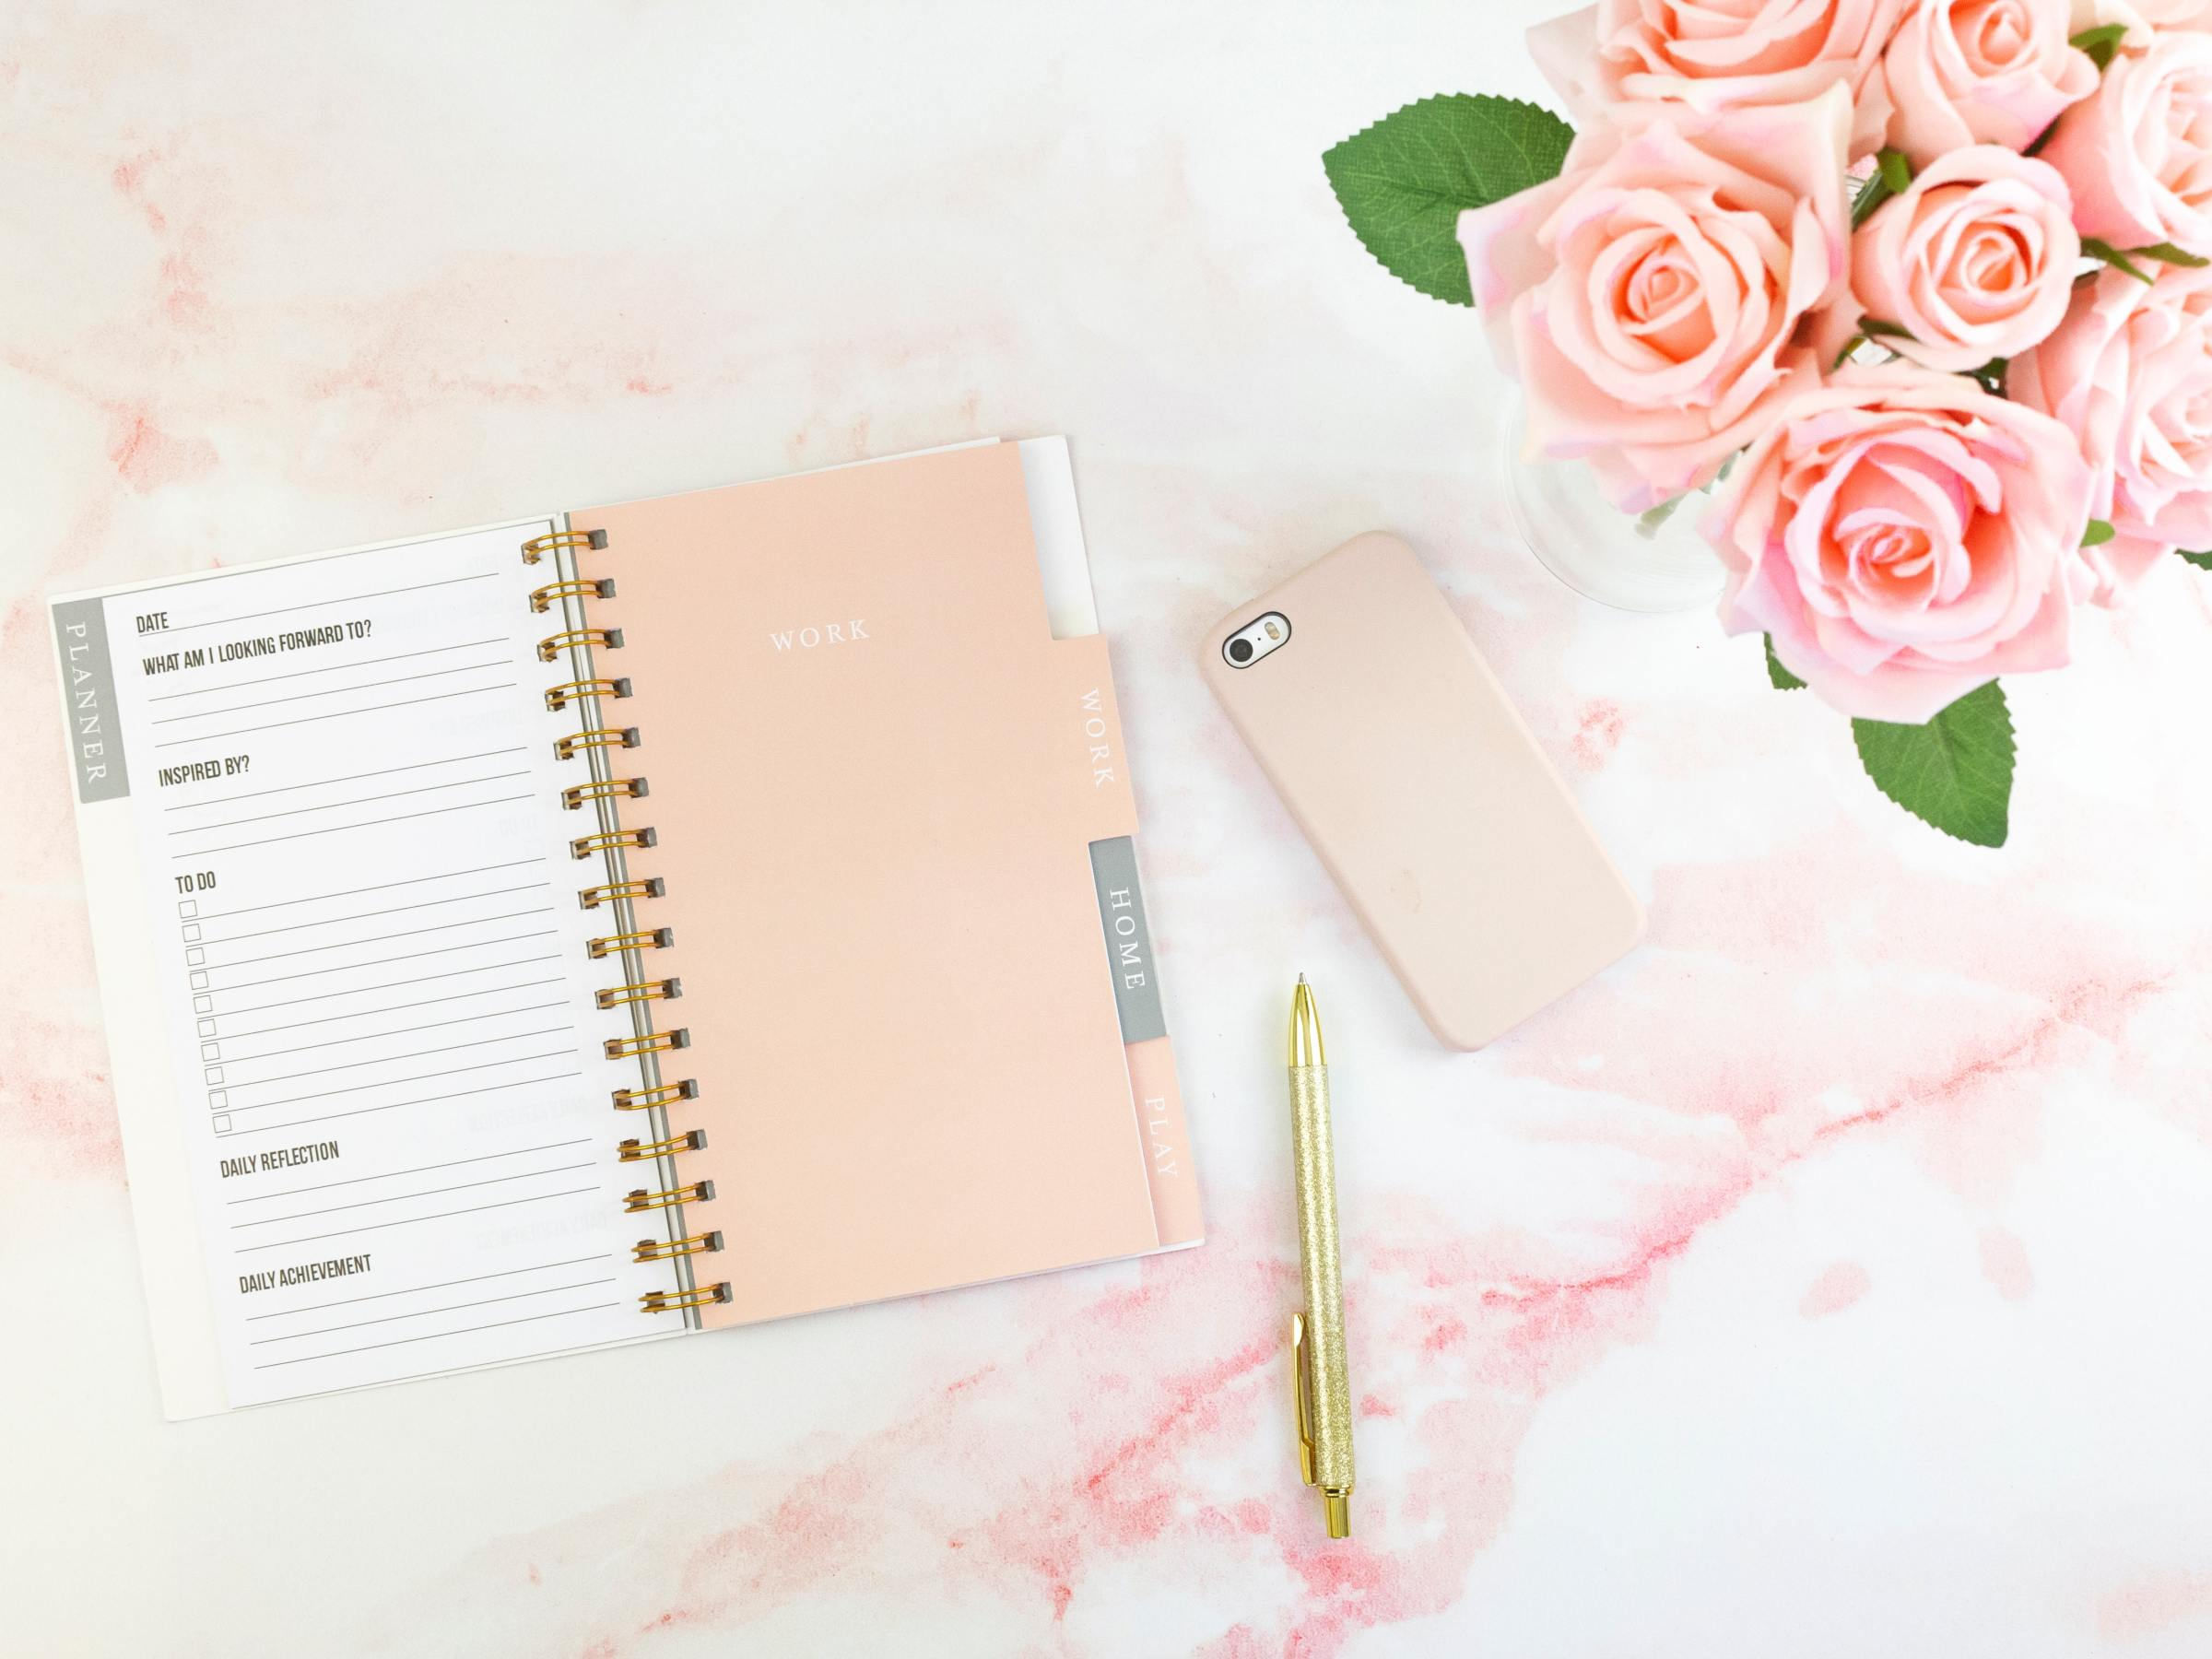 Planner and schedule